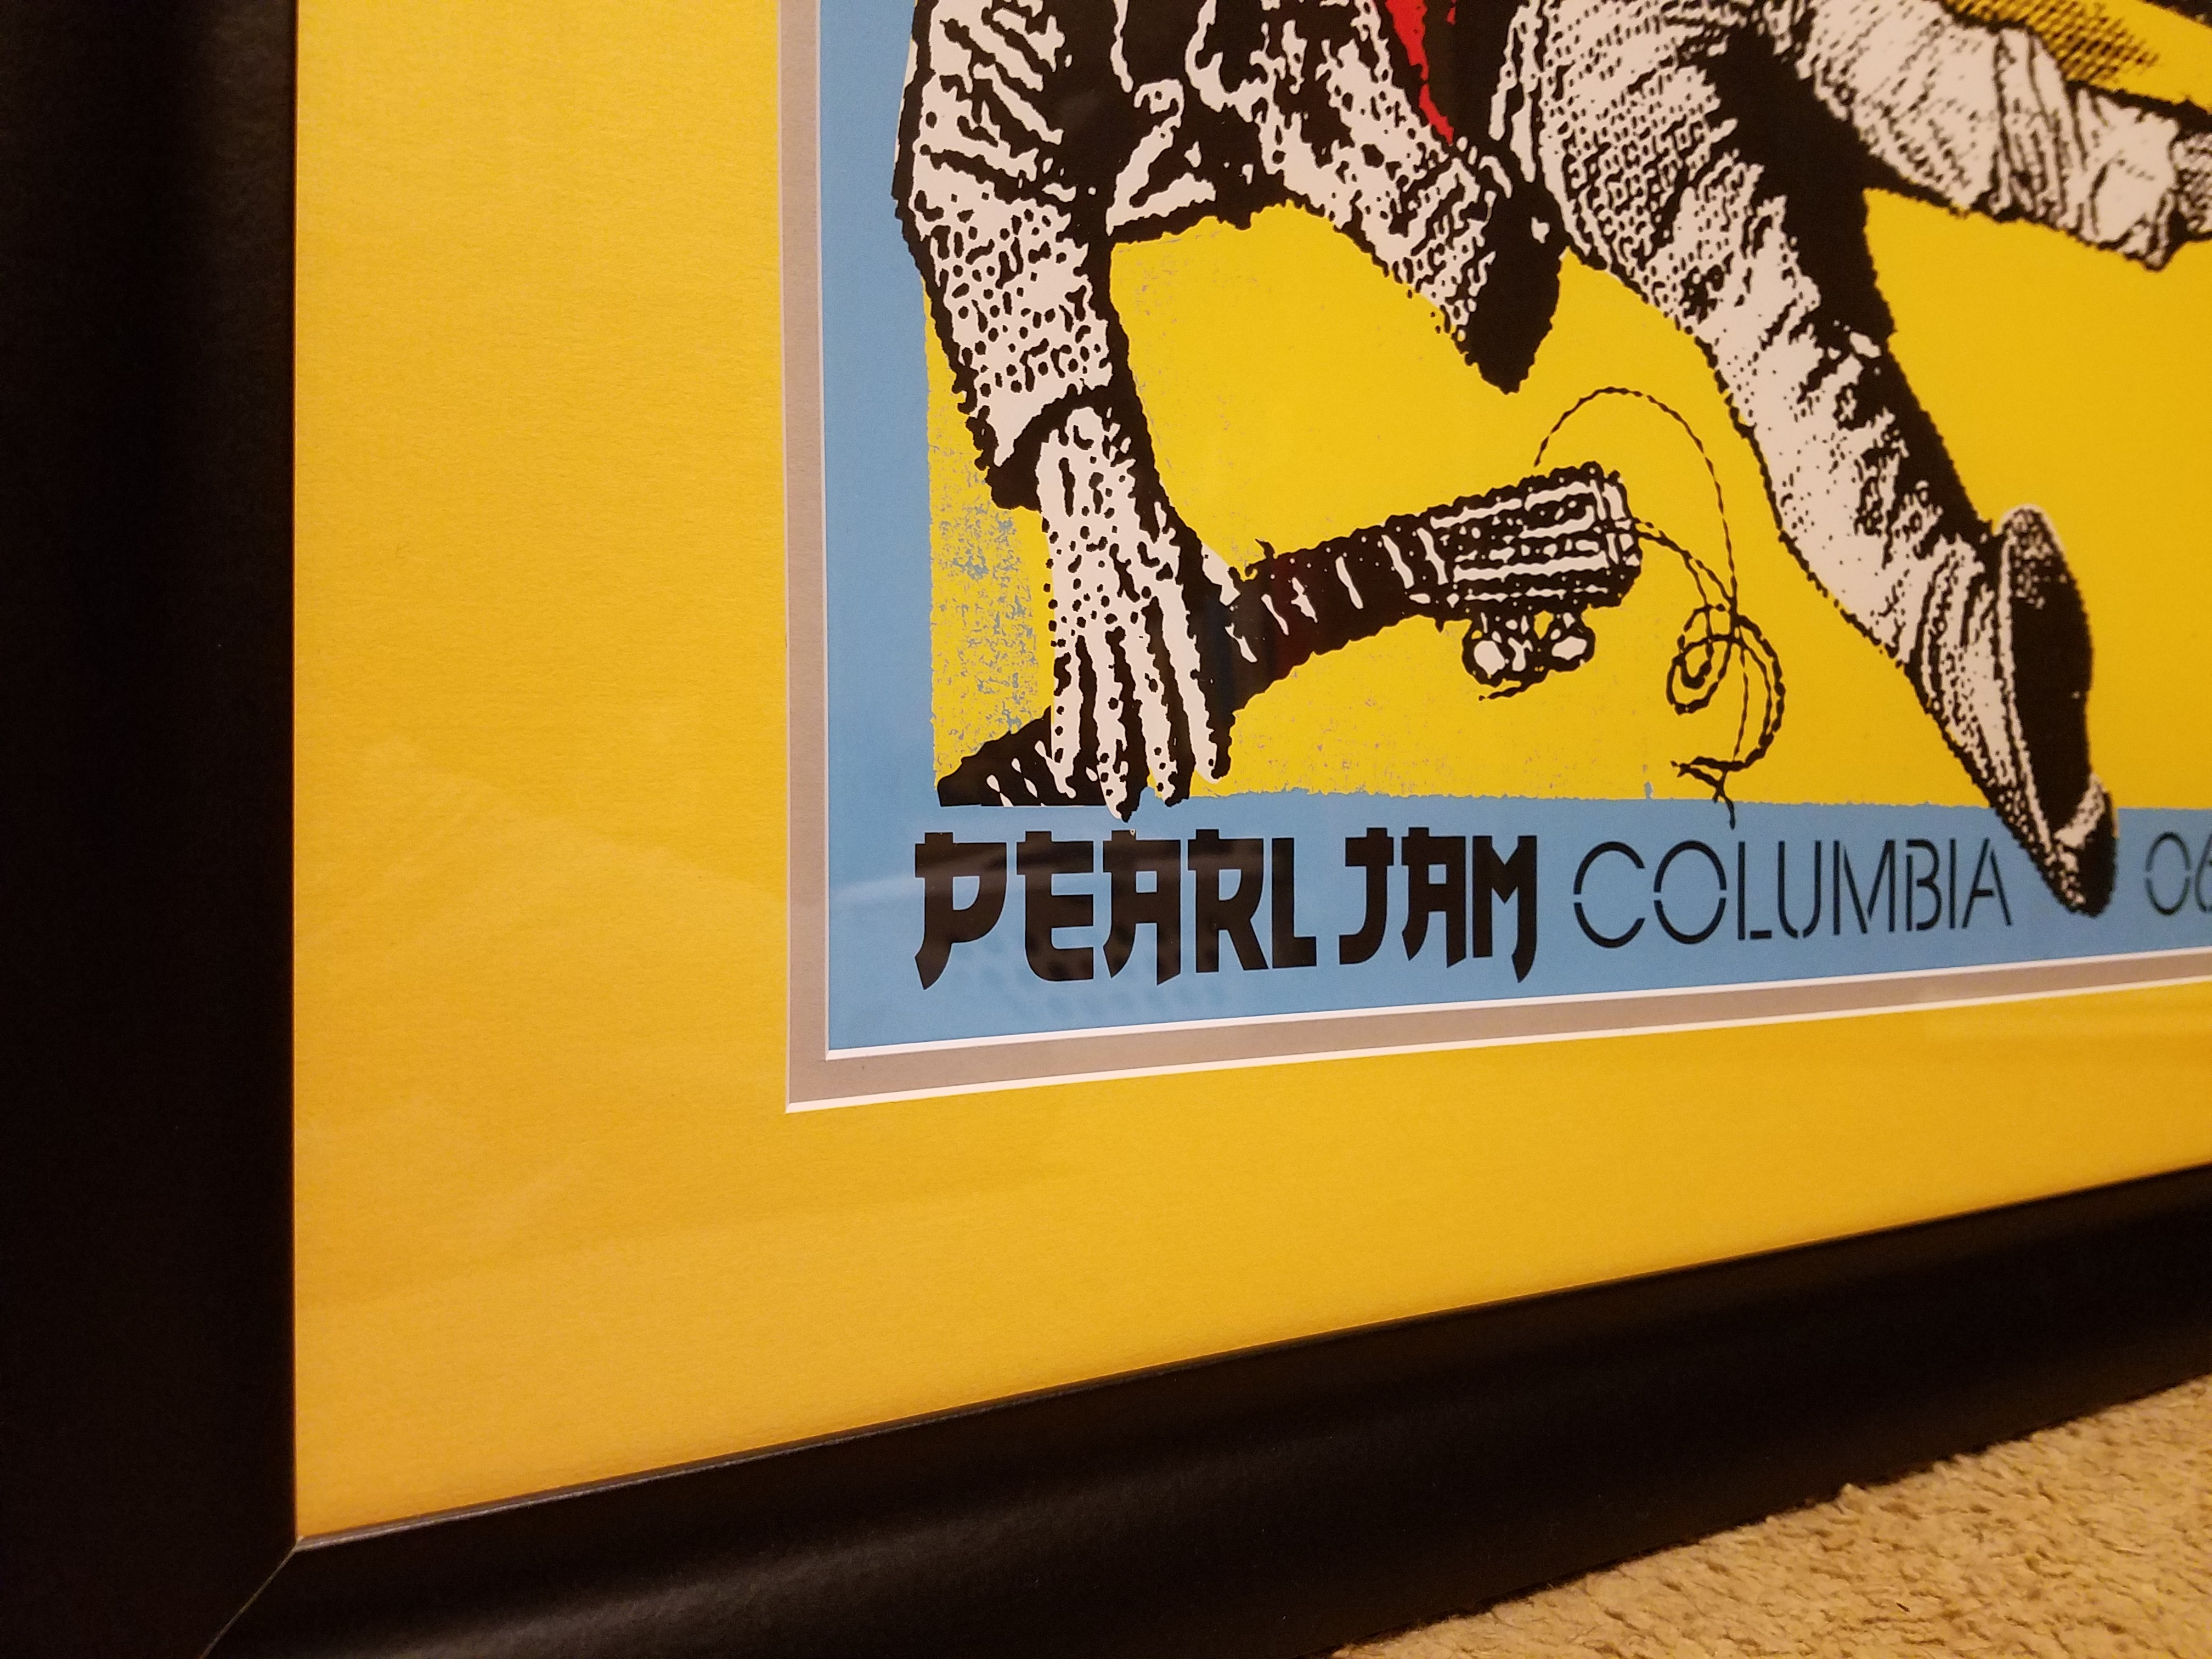 How to frame a poster good? — Pearl Jam Community